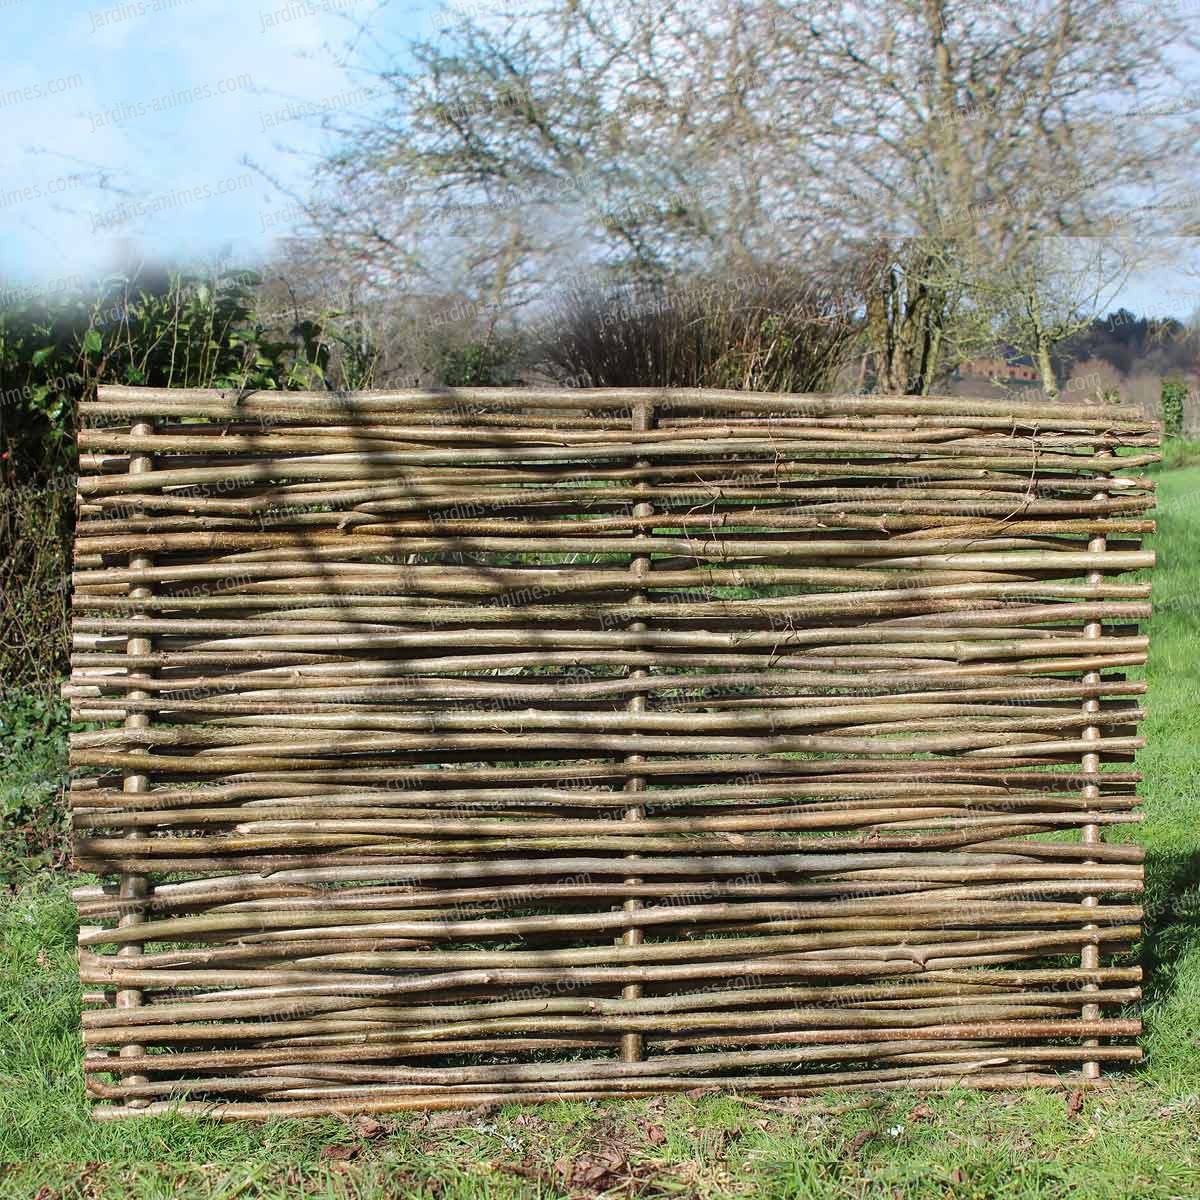 Barri re noisetier tressage horizontal cloture et for Bois de jardin belgique